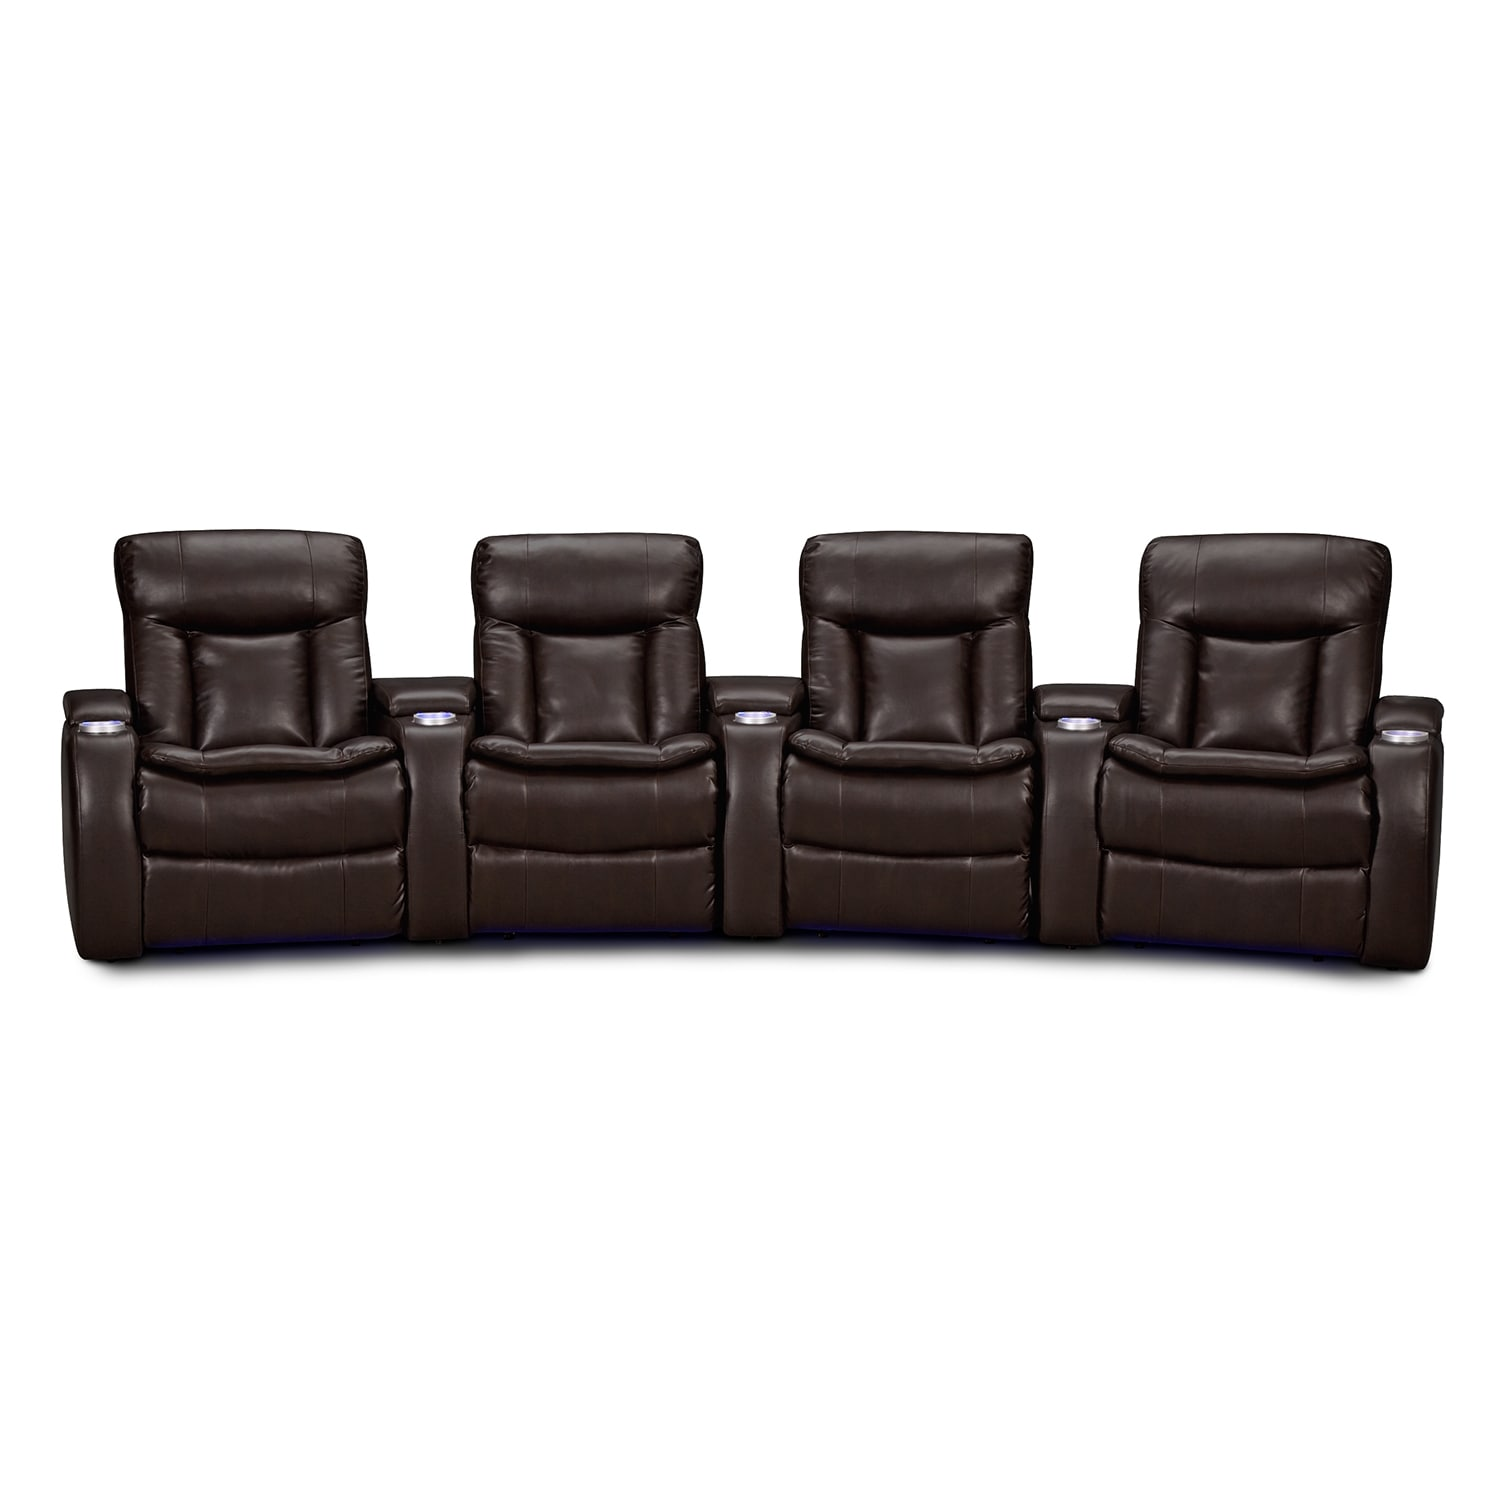 Harman kardon 5 1 home theater price in india hyderabad home theater recliner sectional Home theater furniture amazon